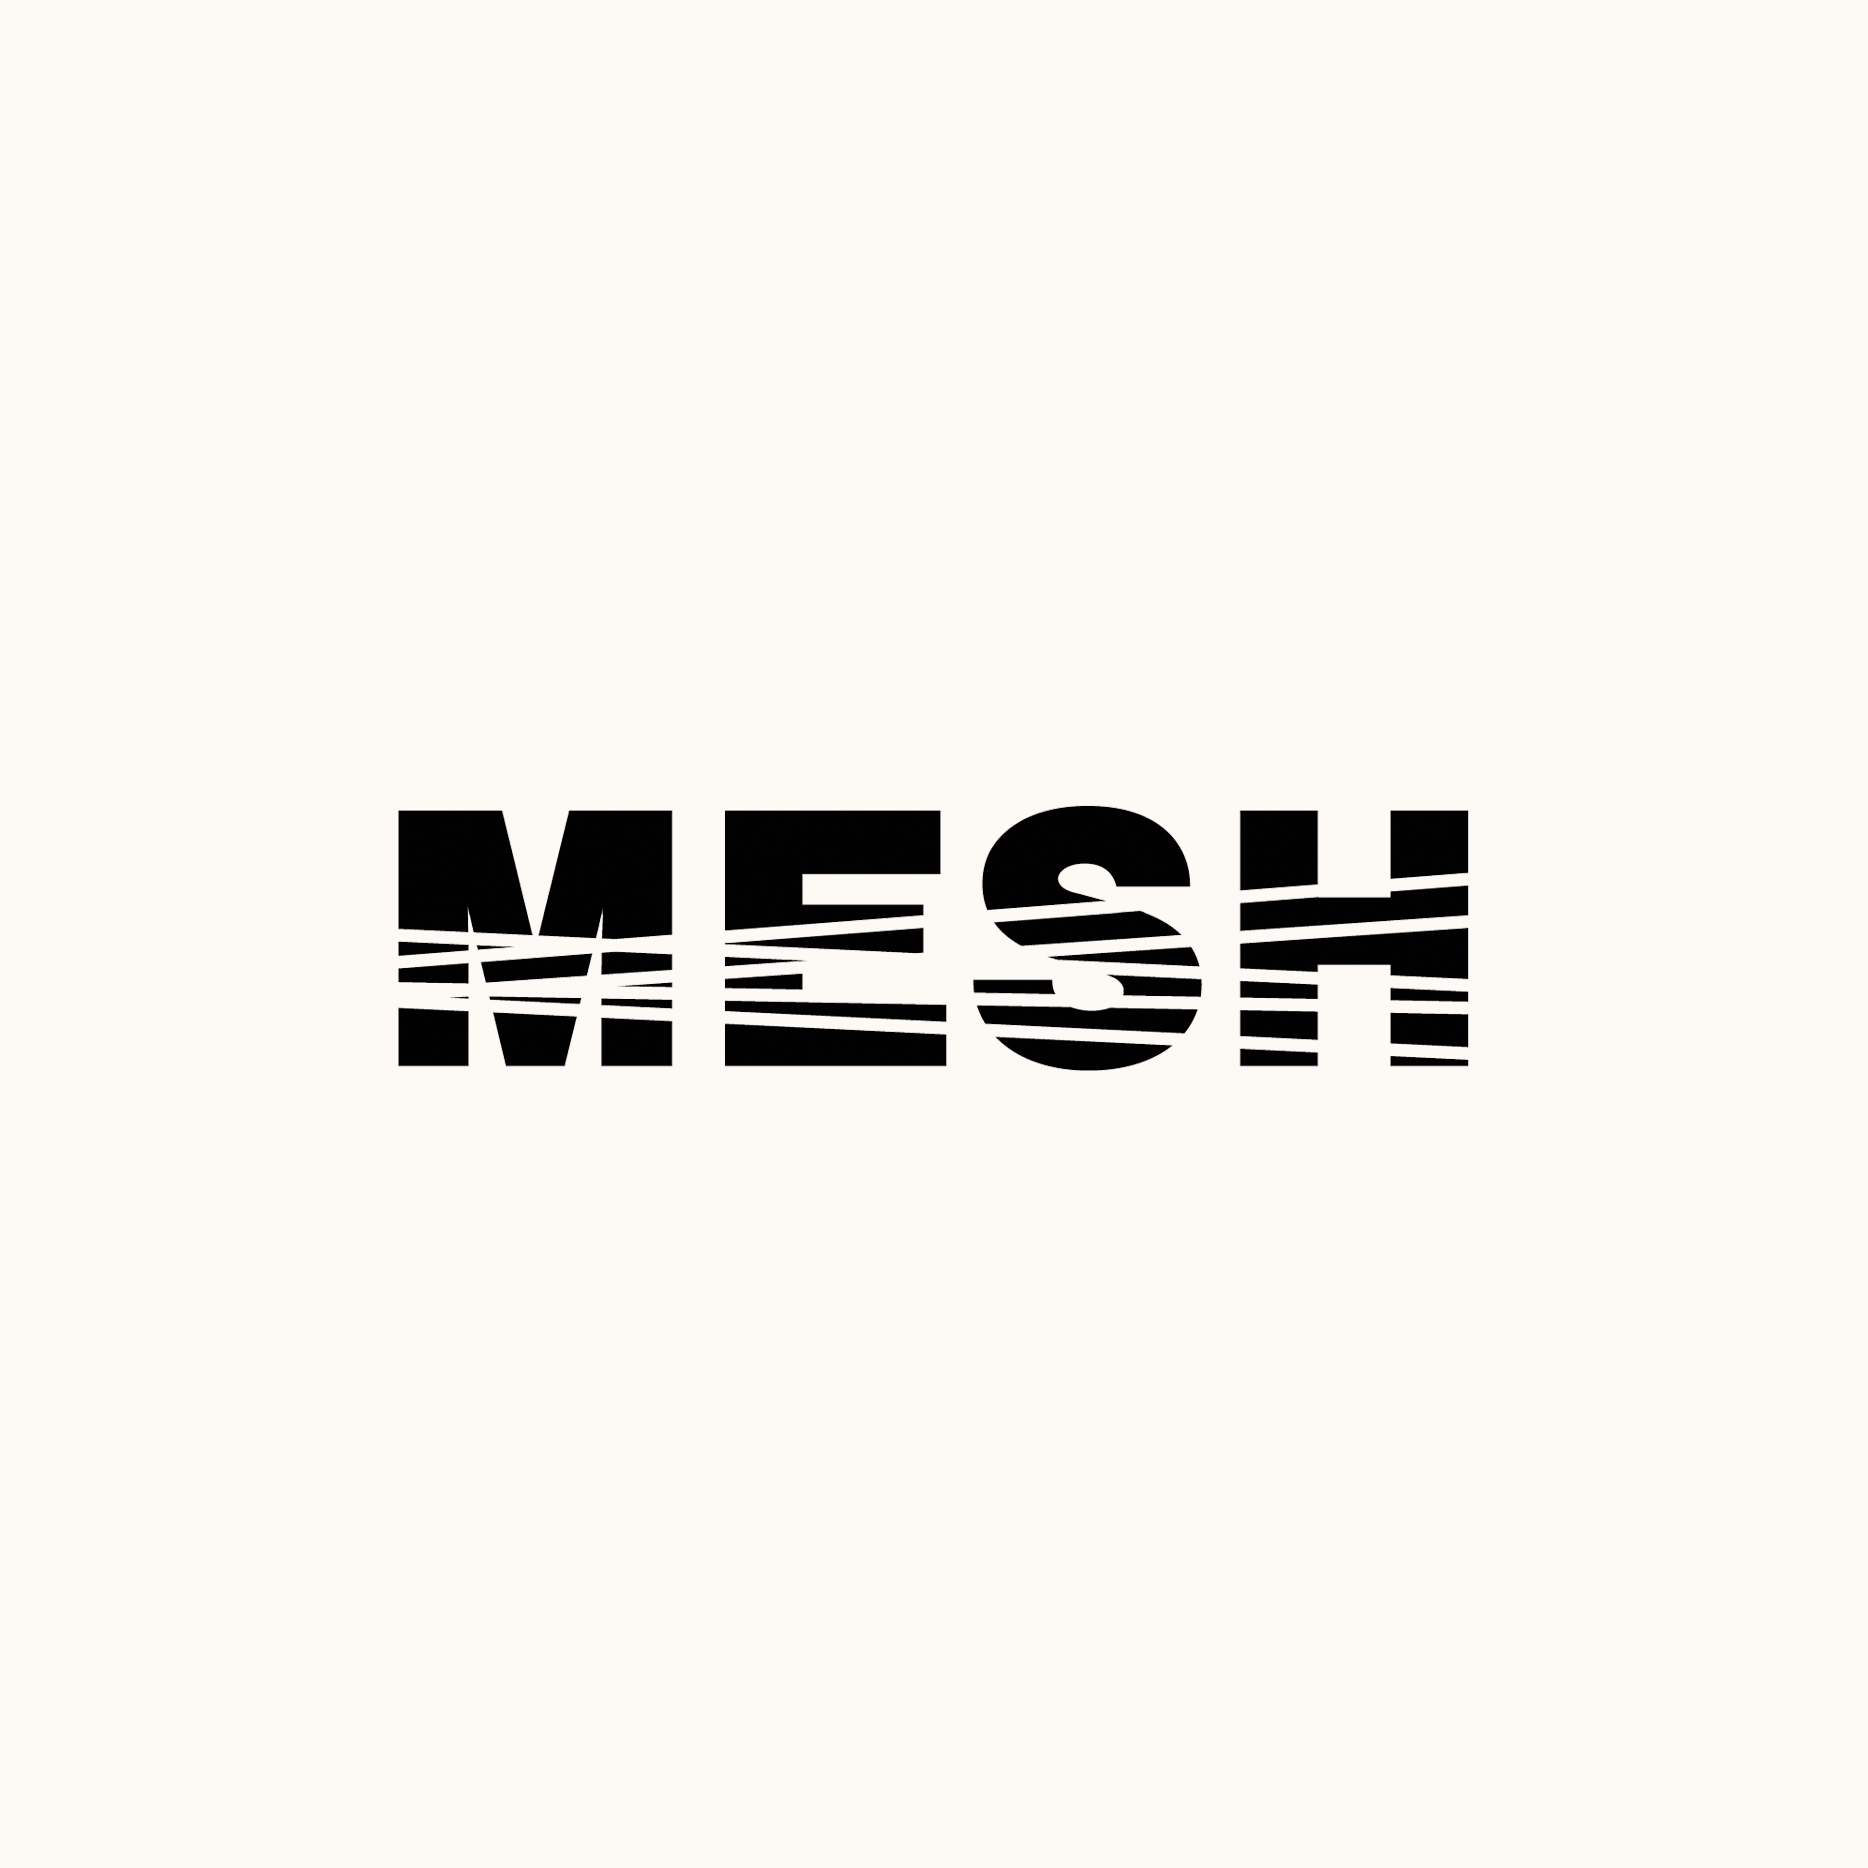 mesh_ident_th_try1